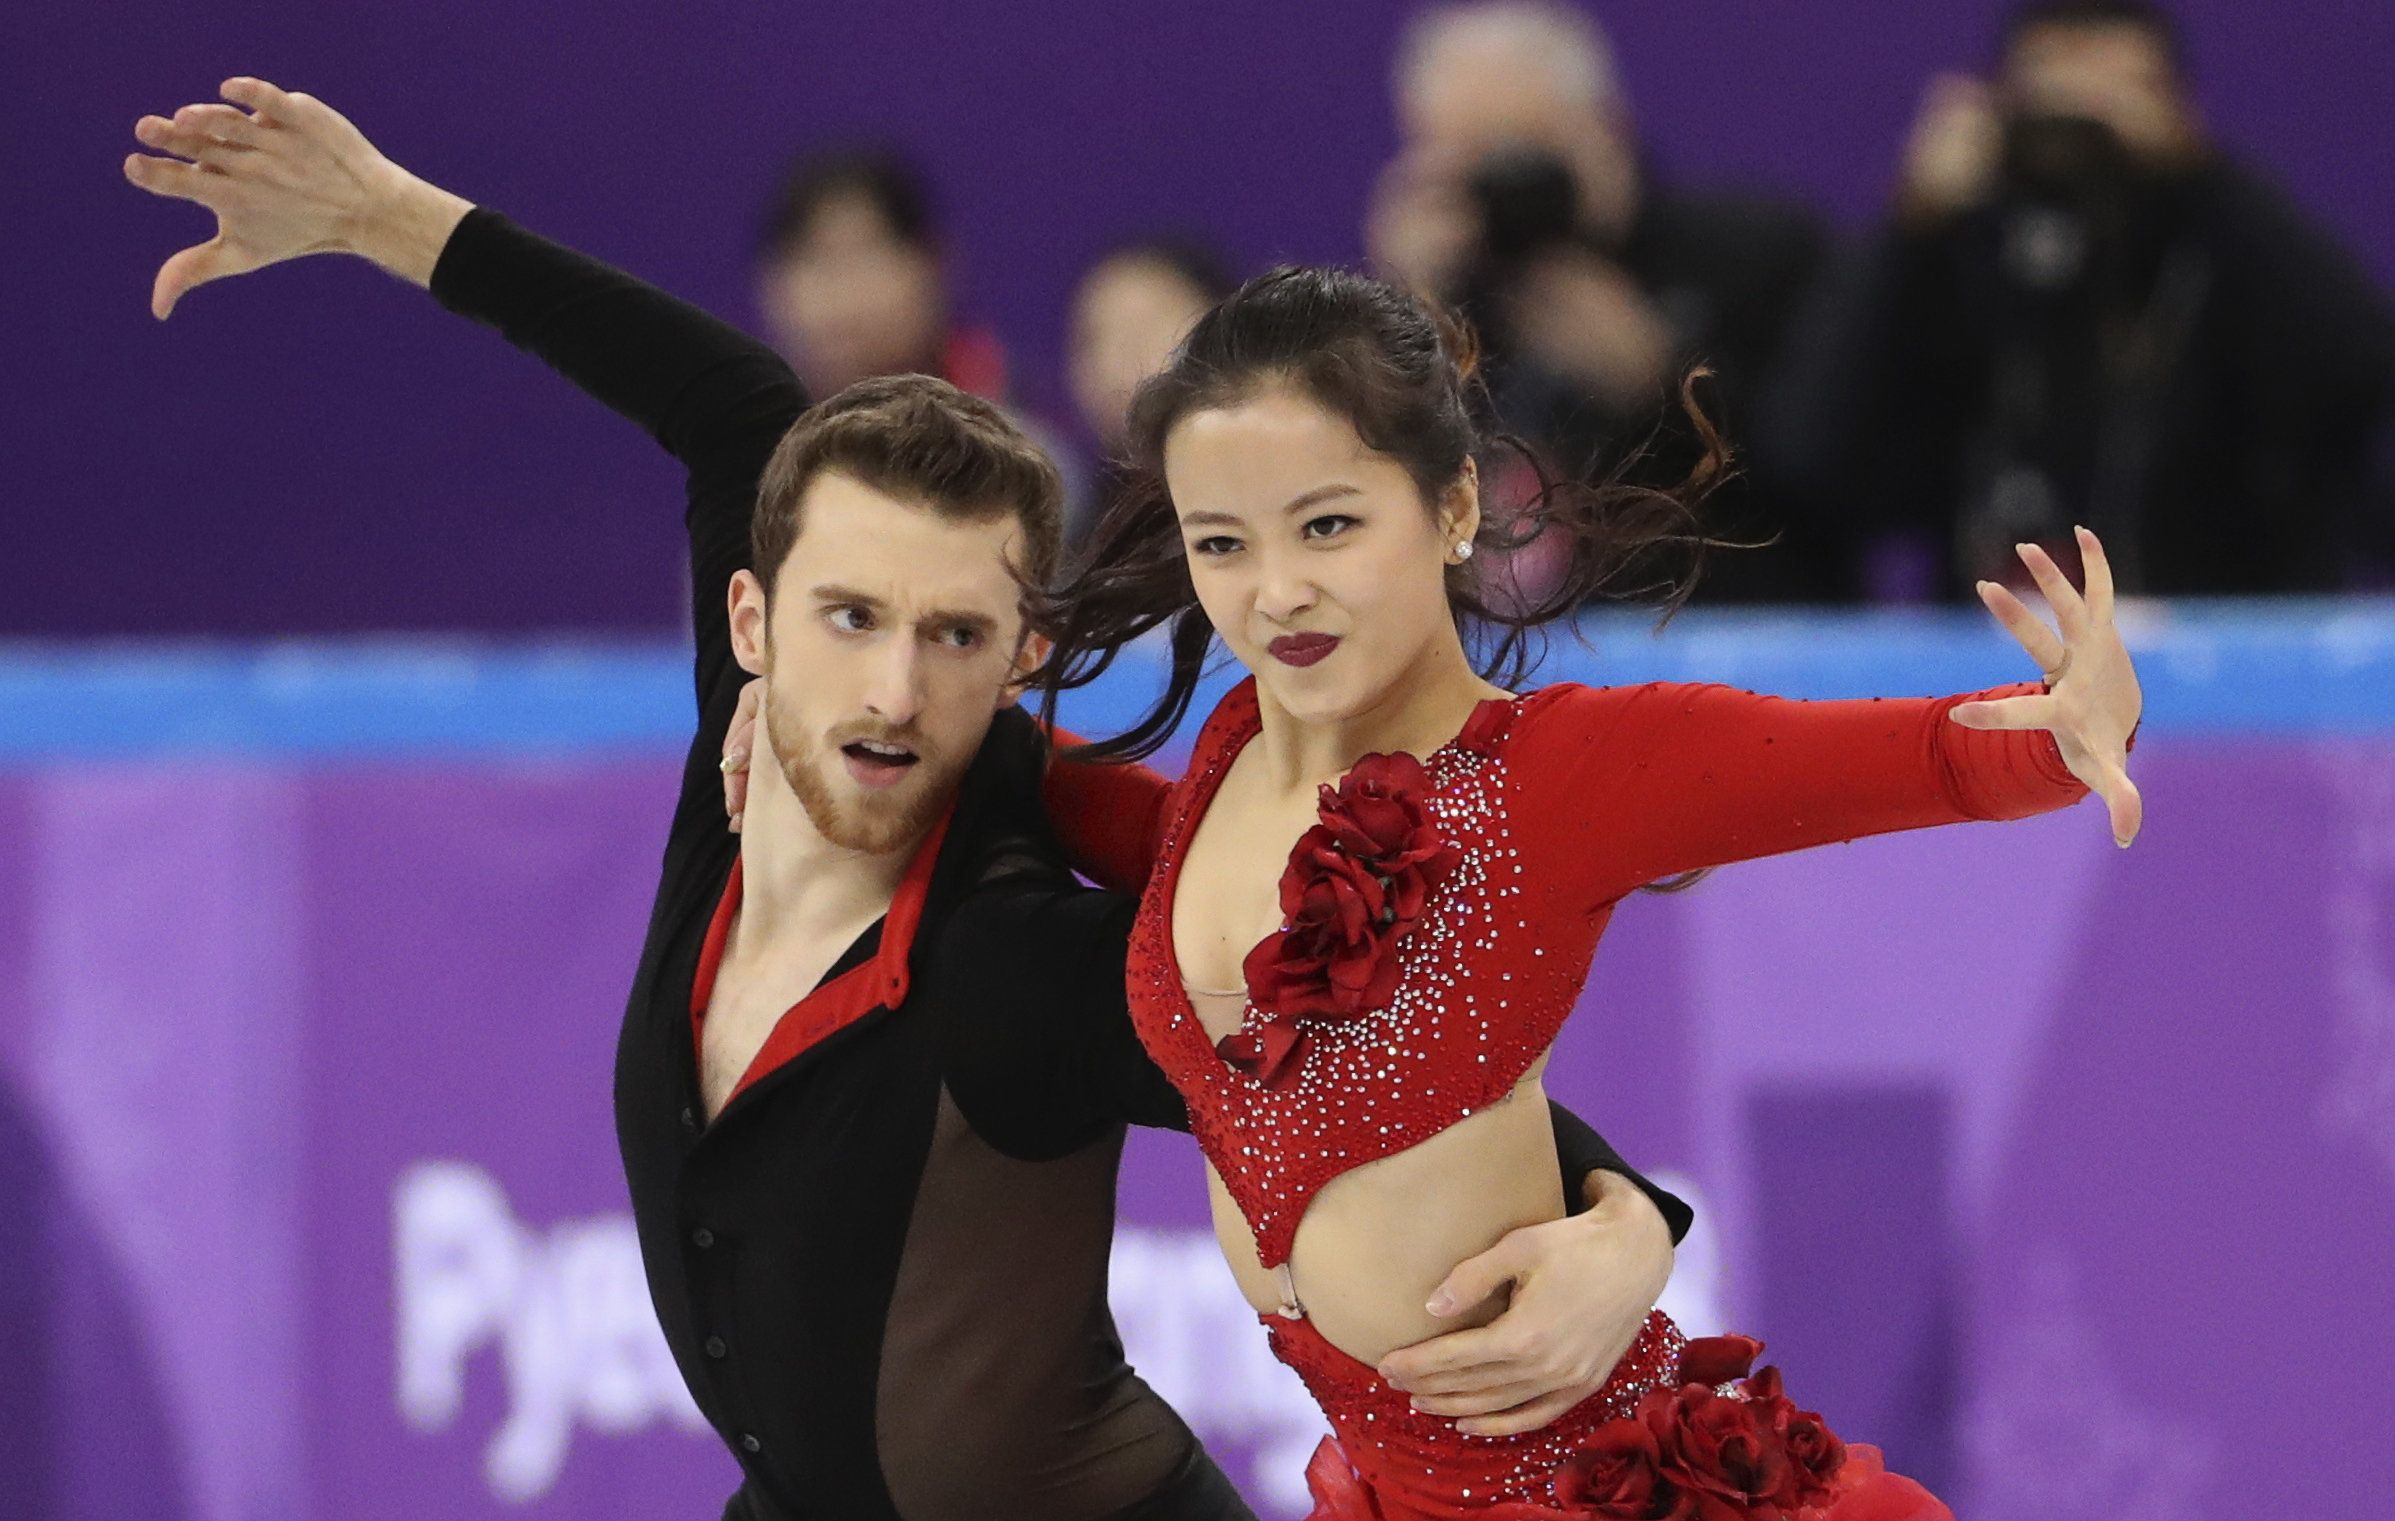 fad9027234383 Yura Min And Alexander Gamelin Of South Korea Compete At The Winter Olympics  On Feb. Sc 1 St HuffPost. image number 3 of skating costume fails ...